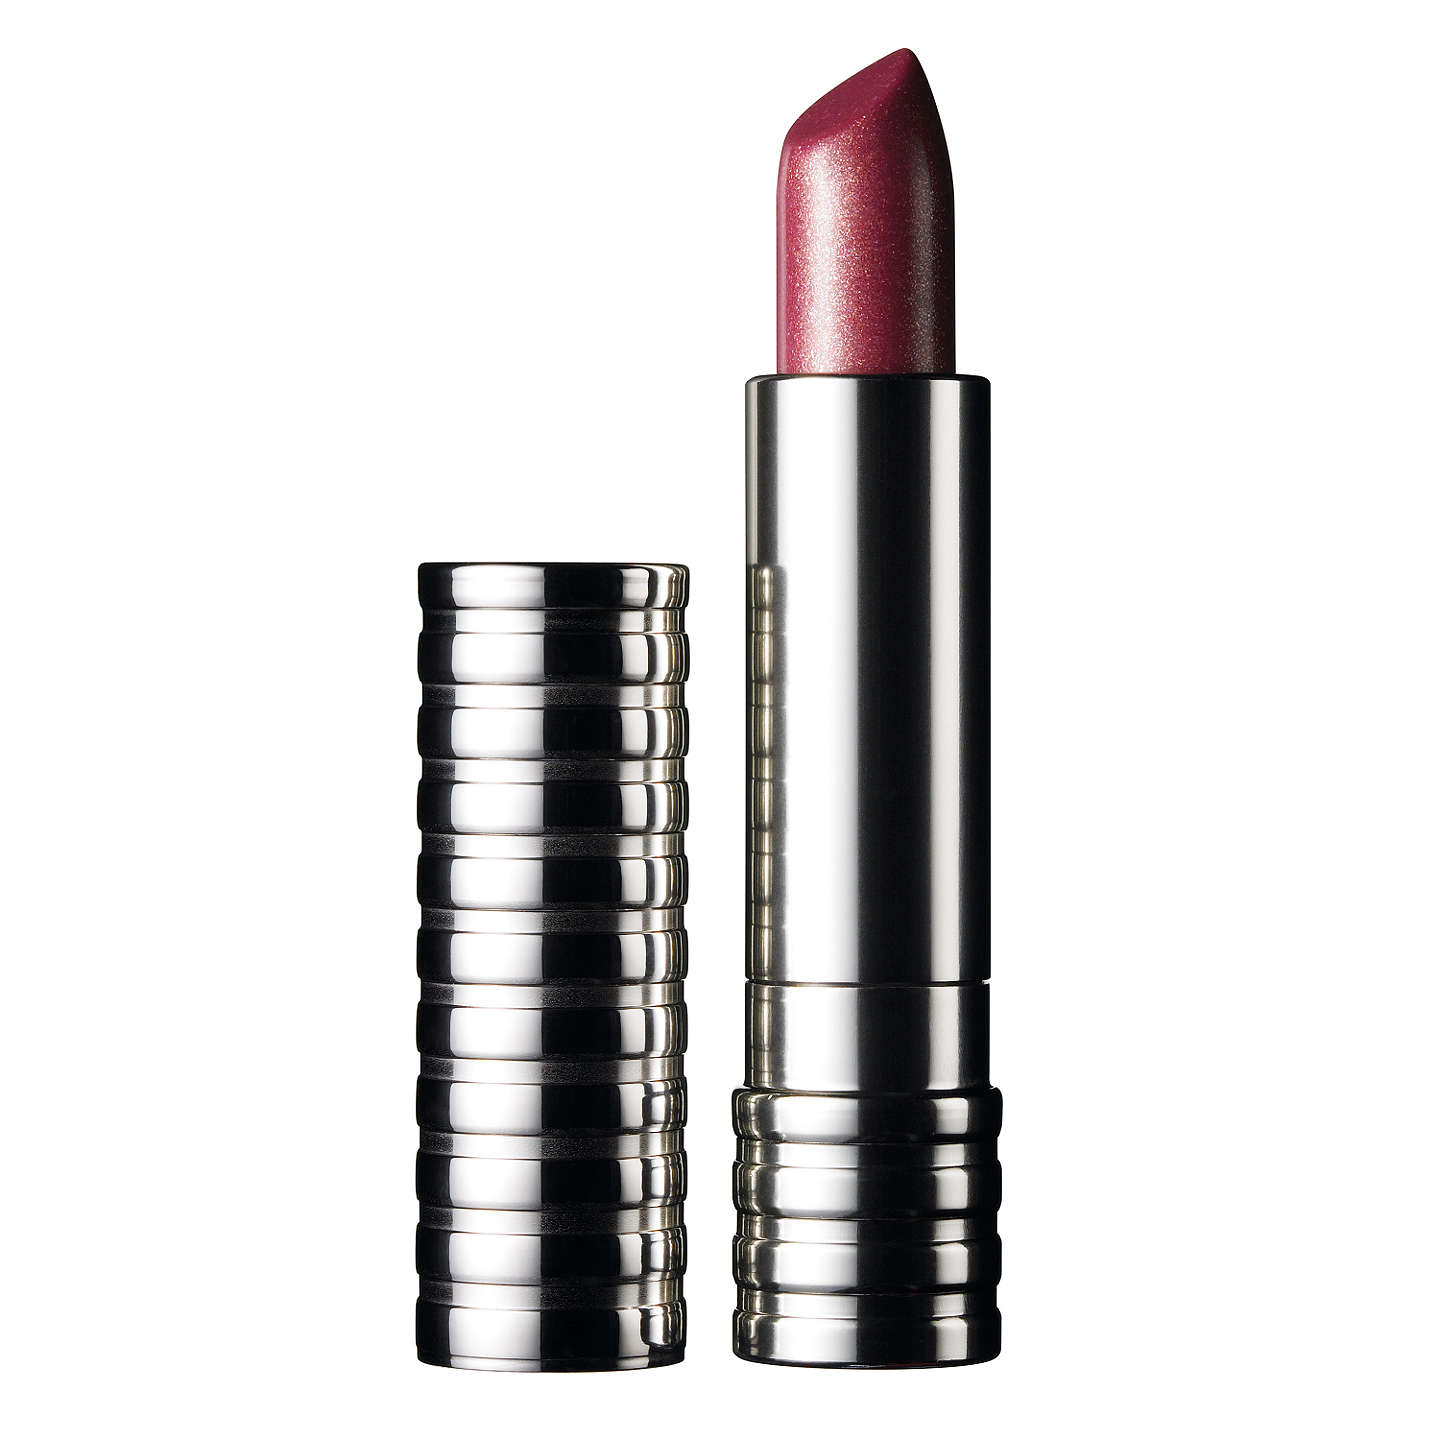 BuyClinique Long Last Lipstick, Dubonnet Soft Shine Online at johnlewis.com